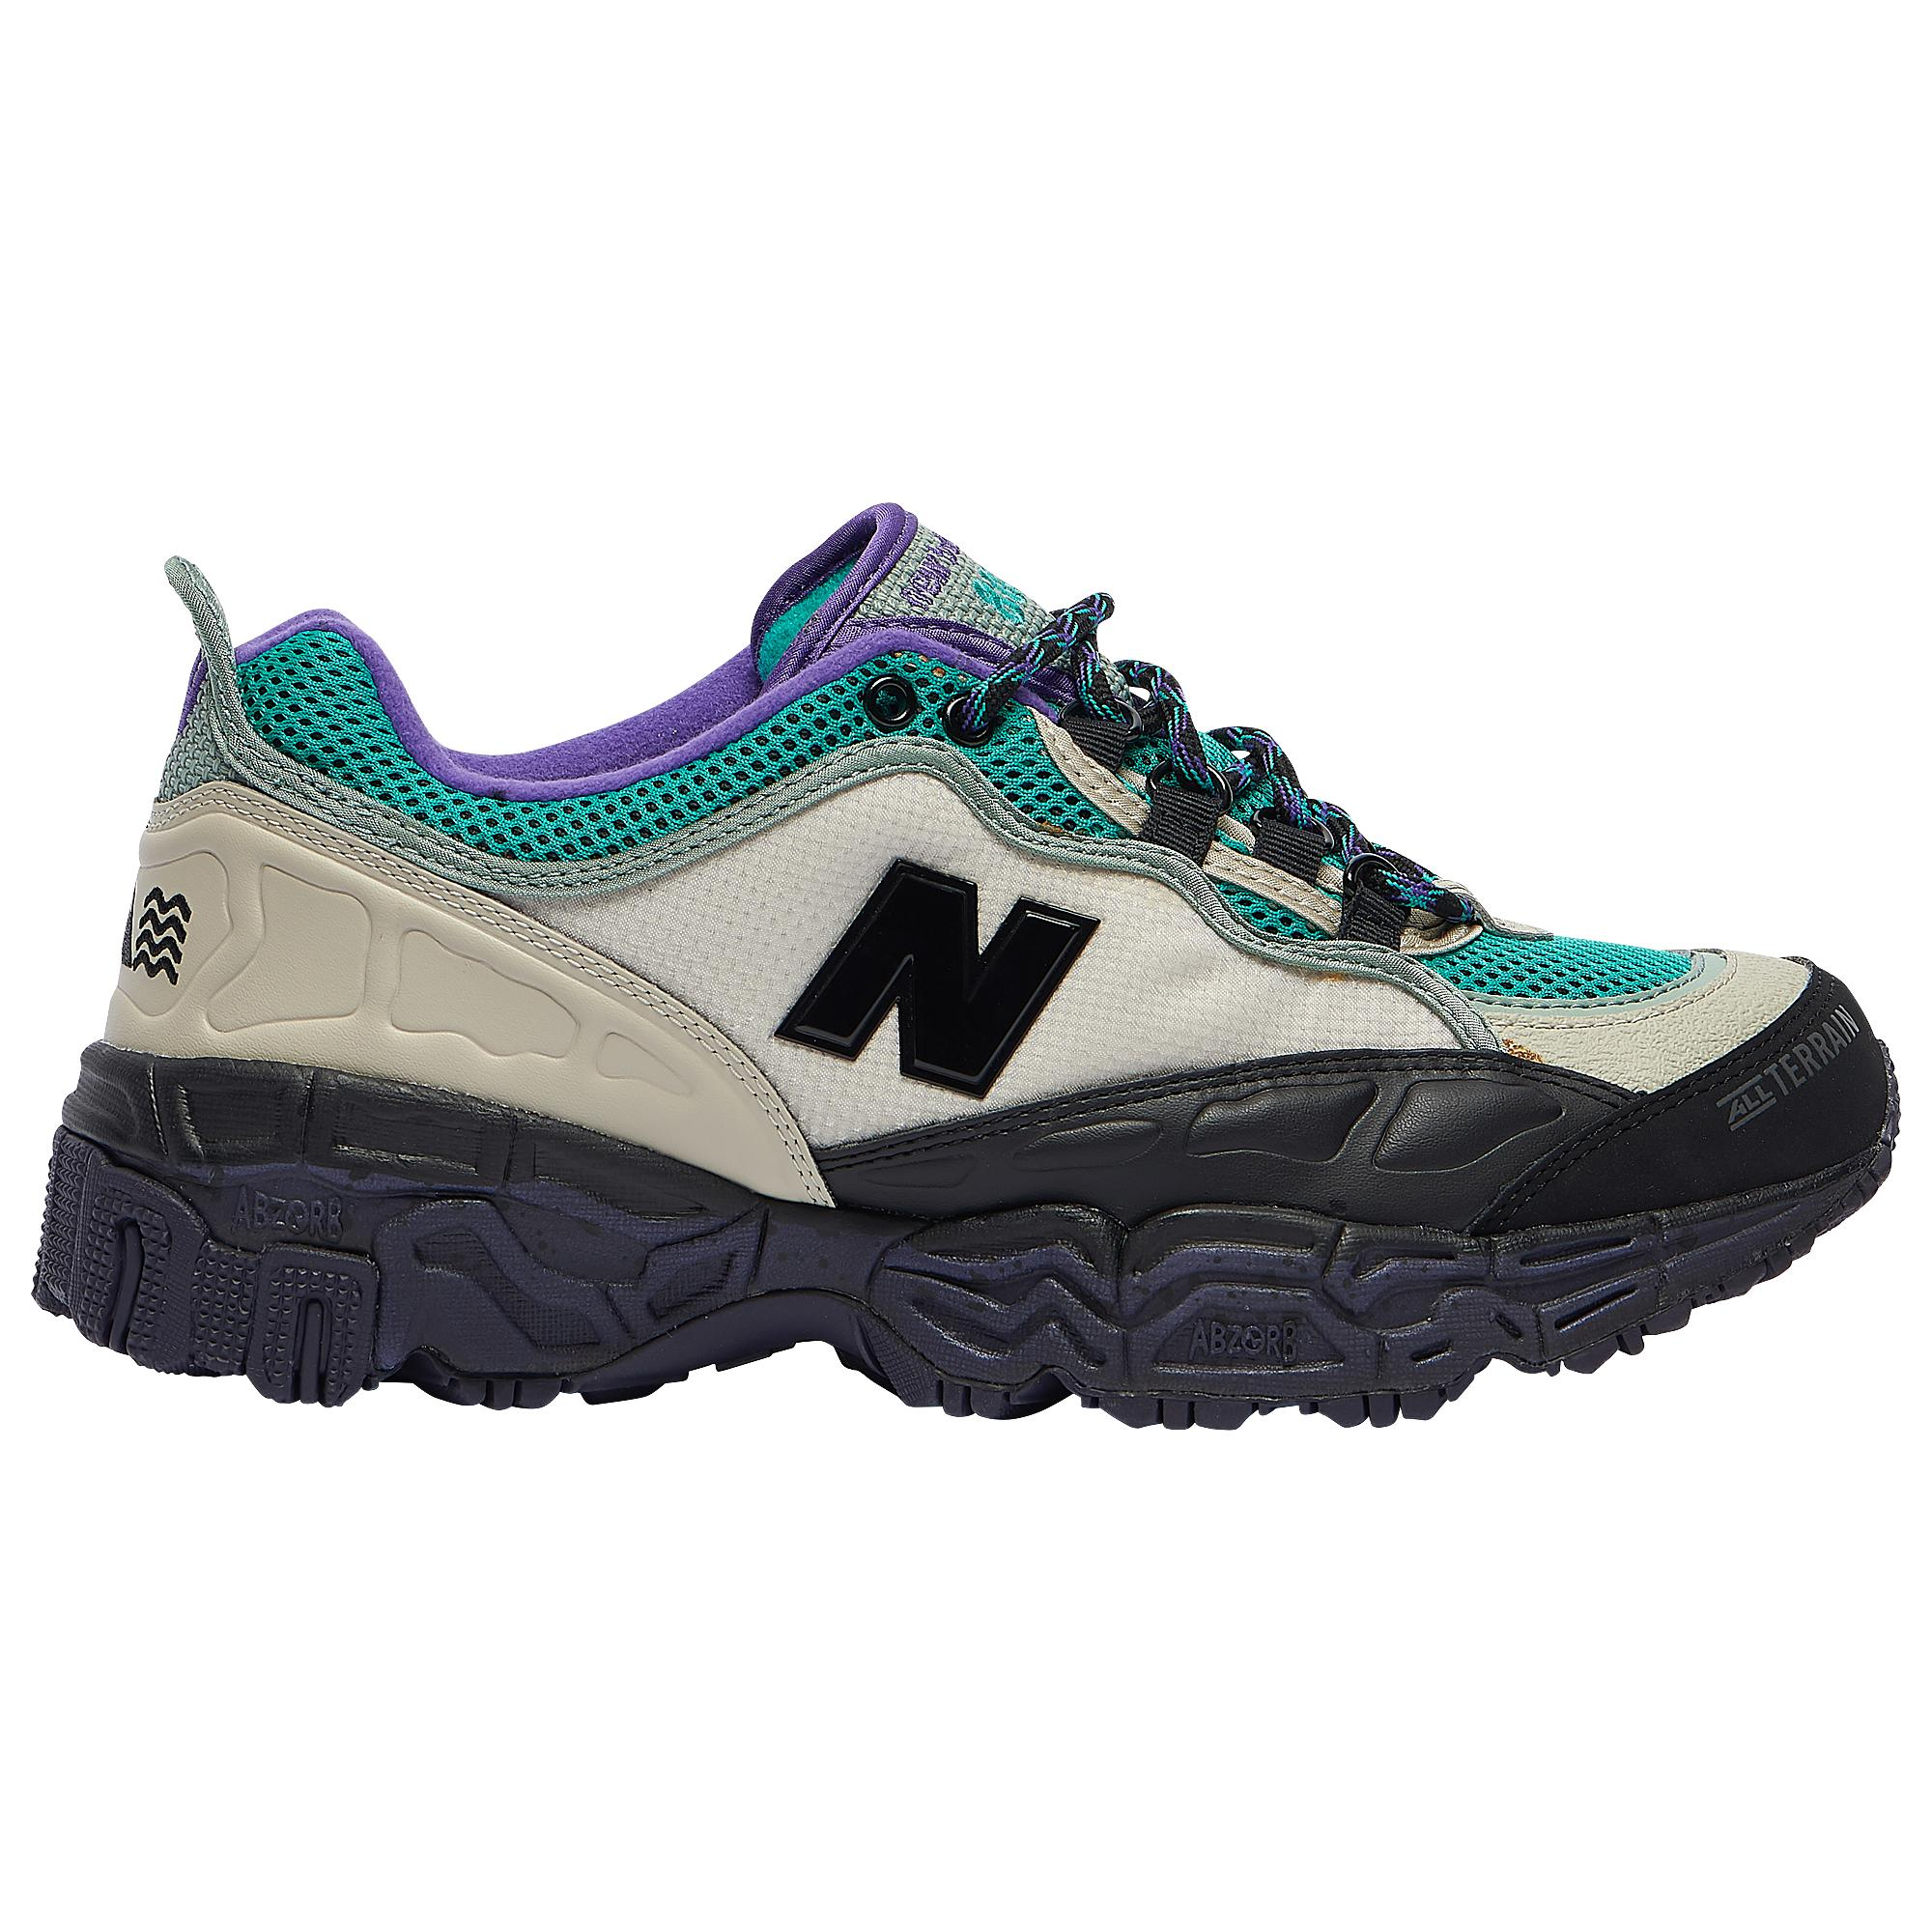 New Balance Leather 801 Running Shoes